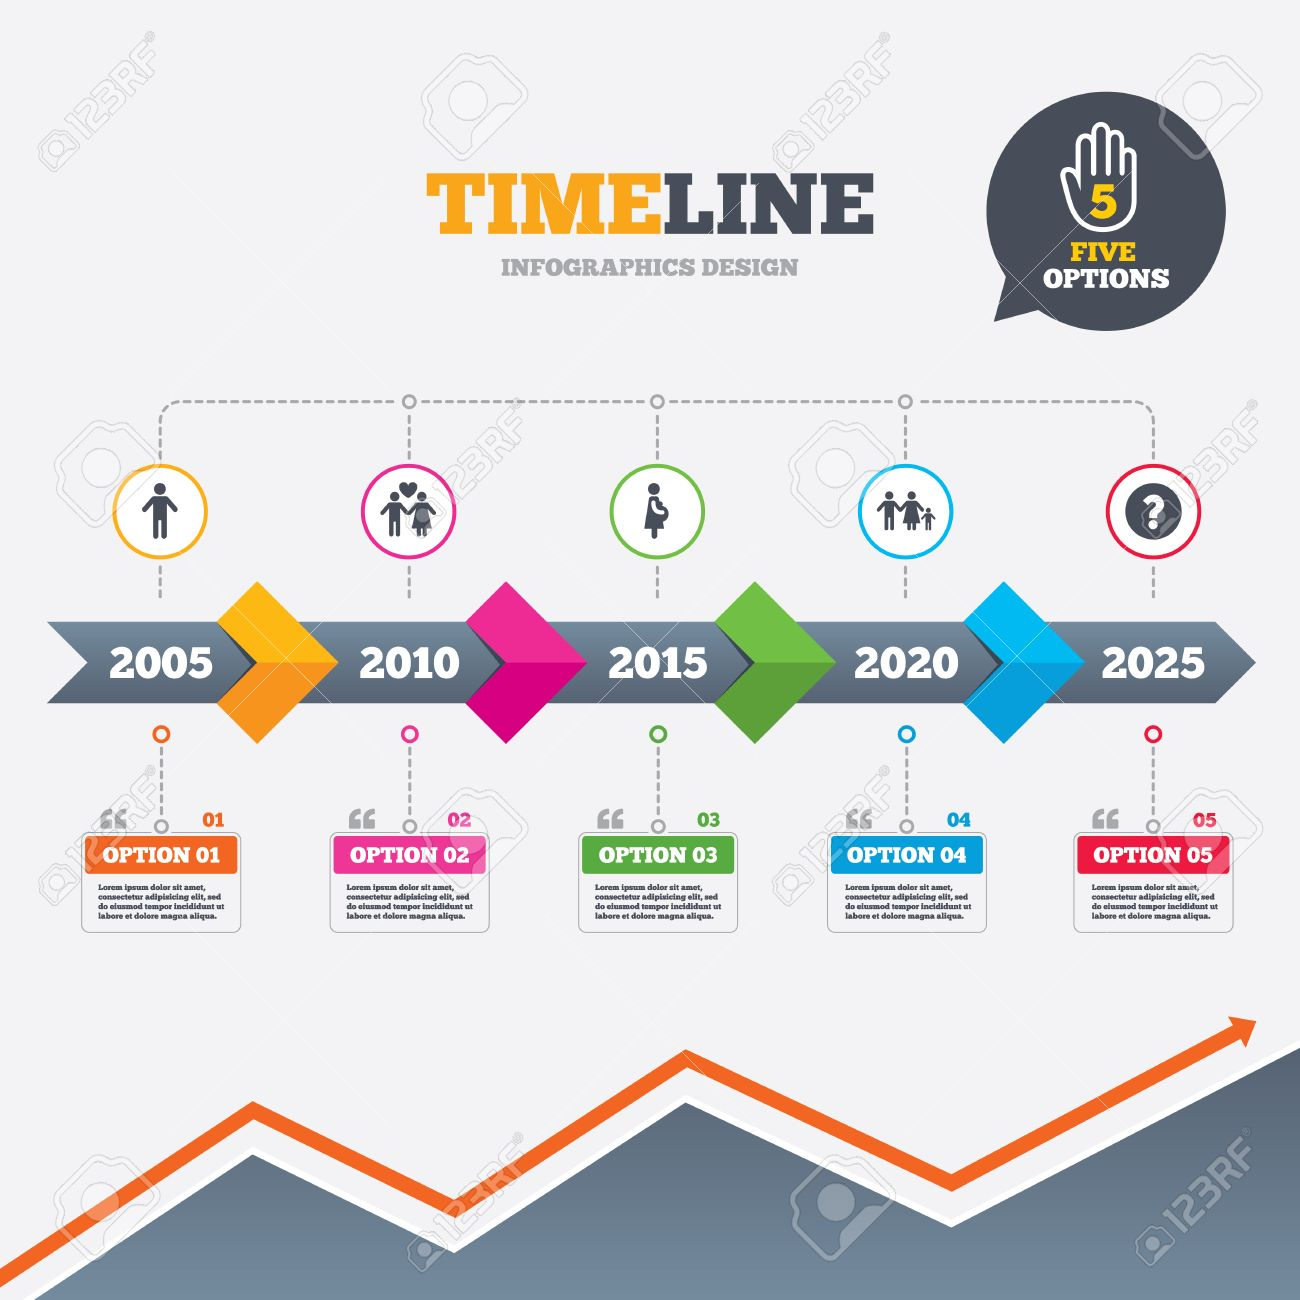 Timeline infographic with arrows family lifetime icons couple timeline infographic with arrows family lifetime icons couple love pregnancy and birth of nvjuhfo Image collections